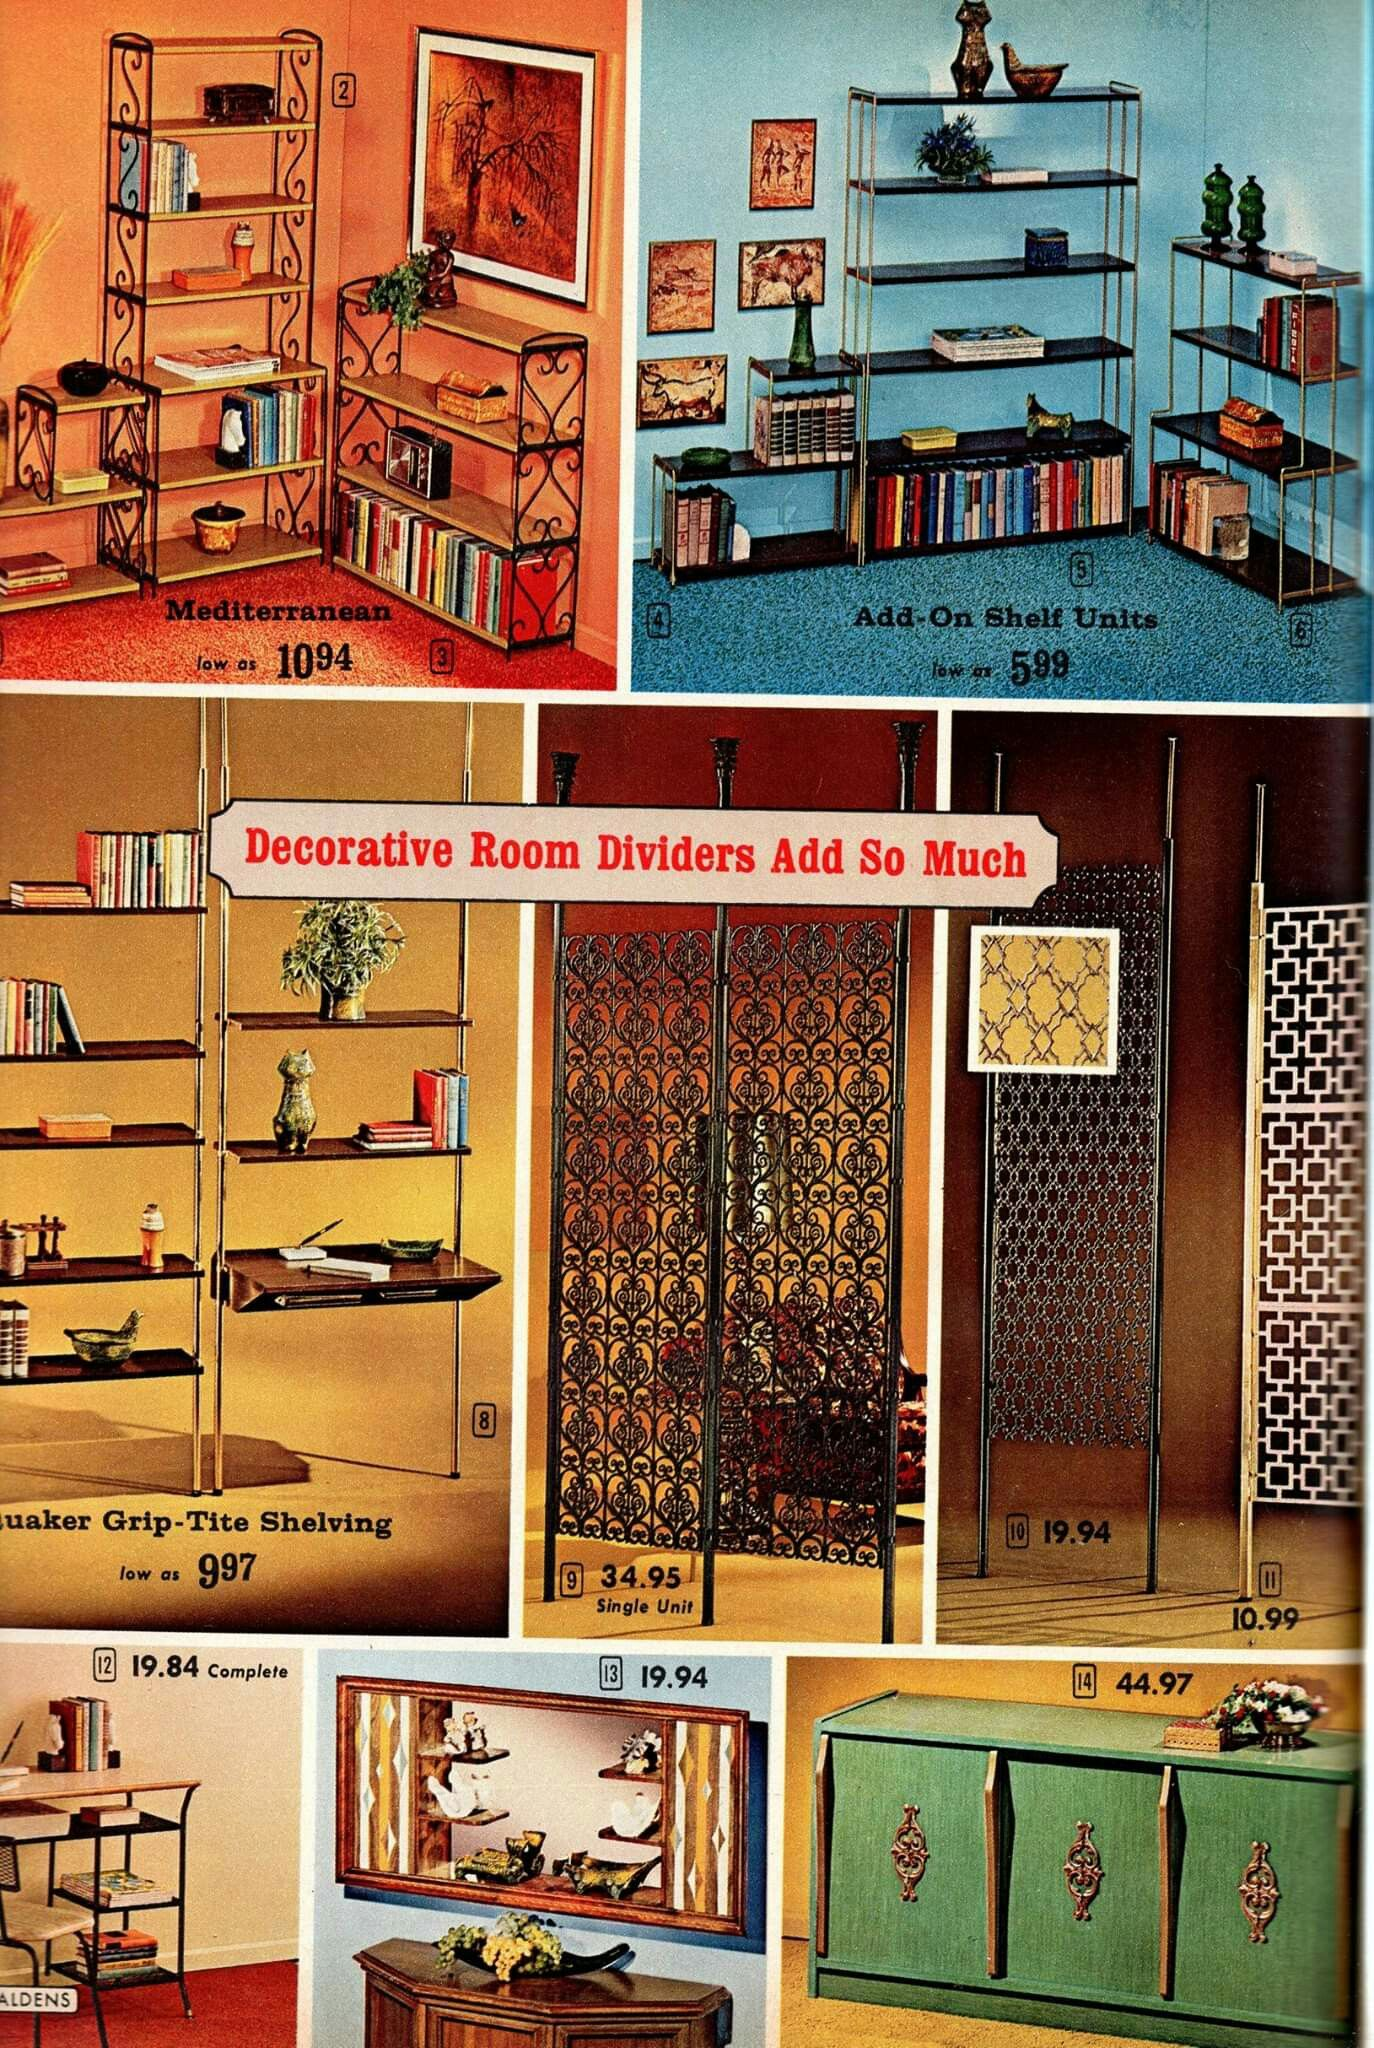 Pin By Dawn Doughty On Mid Century Modern In 2019 Retro